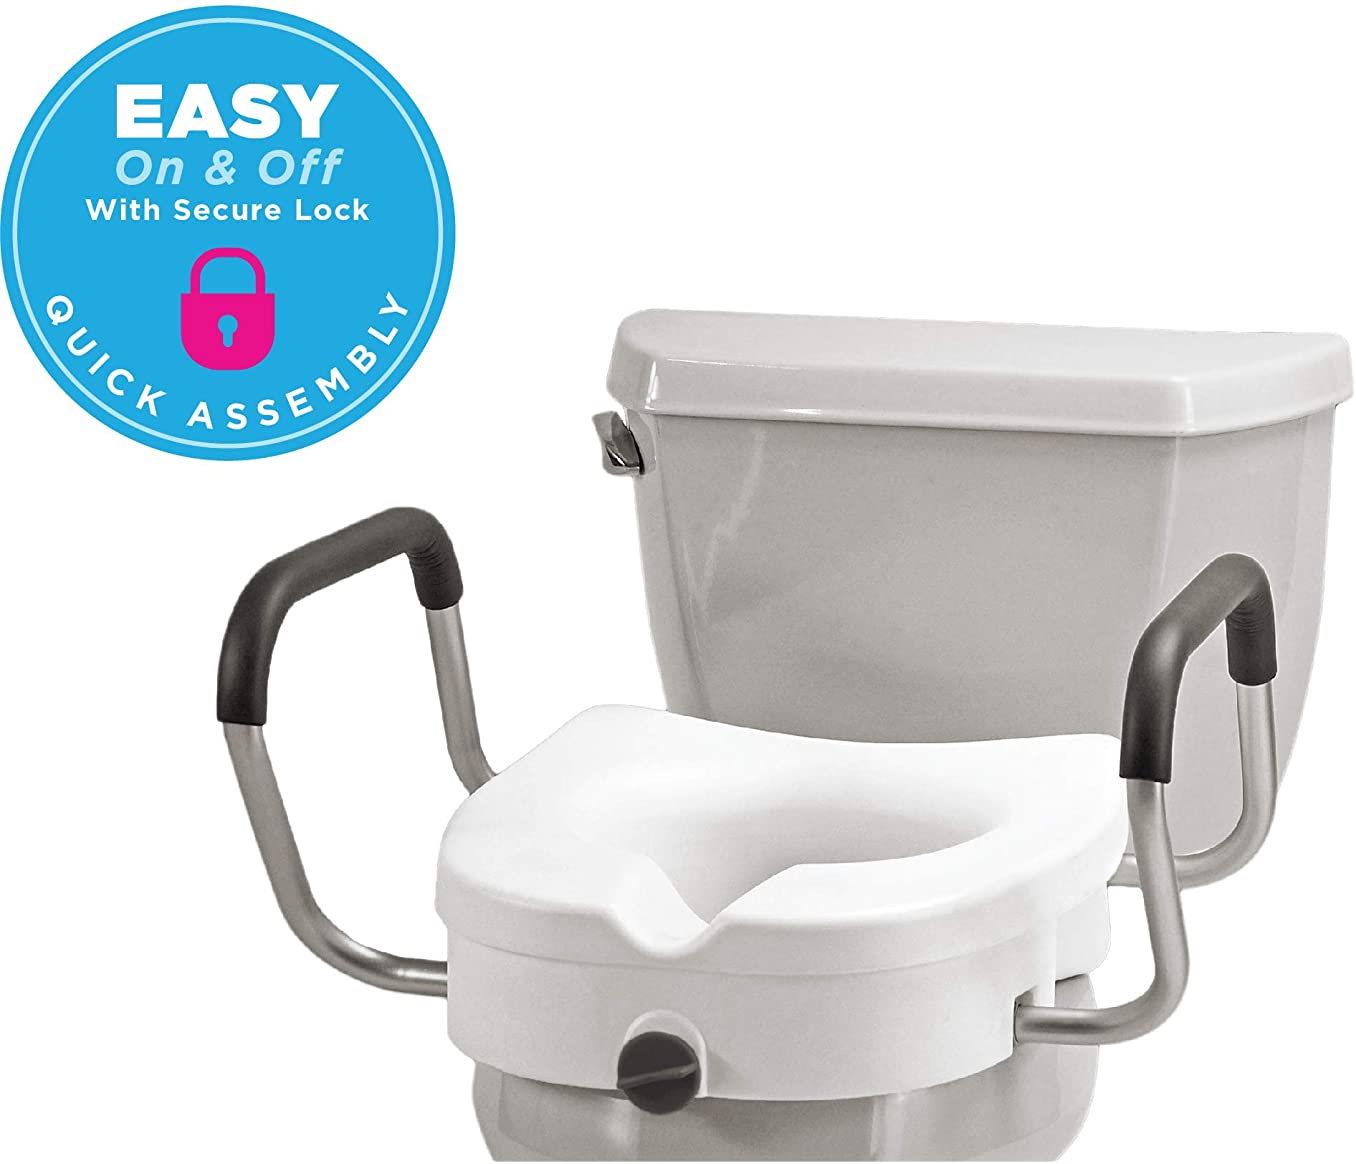 """NOVA Medical Products Elevated Raised Toilet Seat with Removable, Adjustable Padded Arms, 20"""" Width Between Arms, Locking, Easy On and Off, for Standard and Elongated Toilets"""